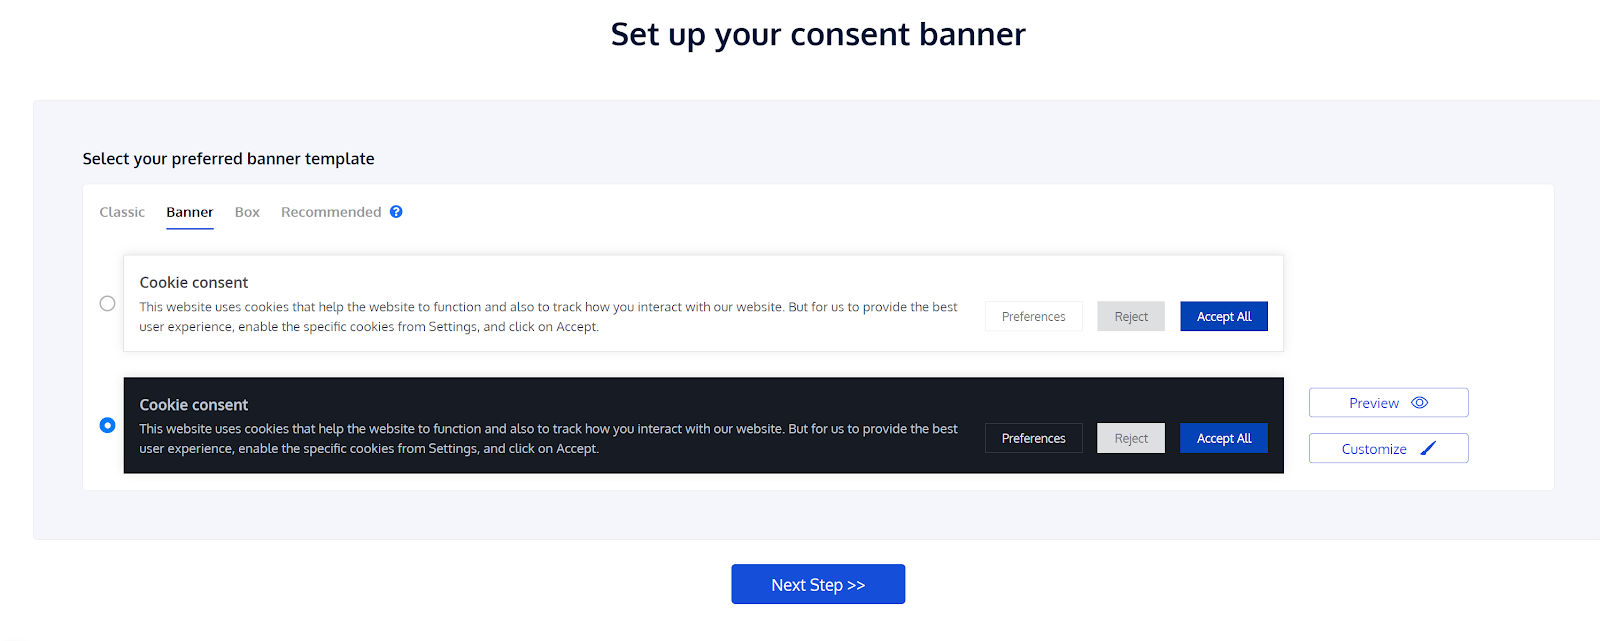 CookieYes Cookie consent banner setup